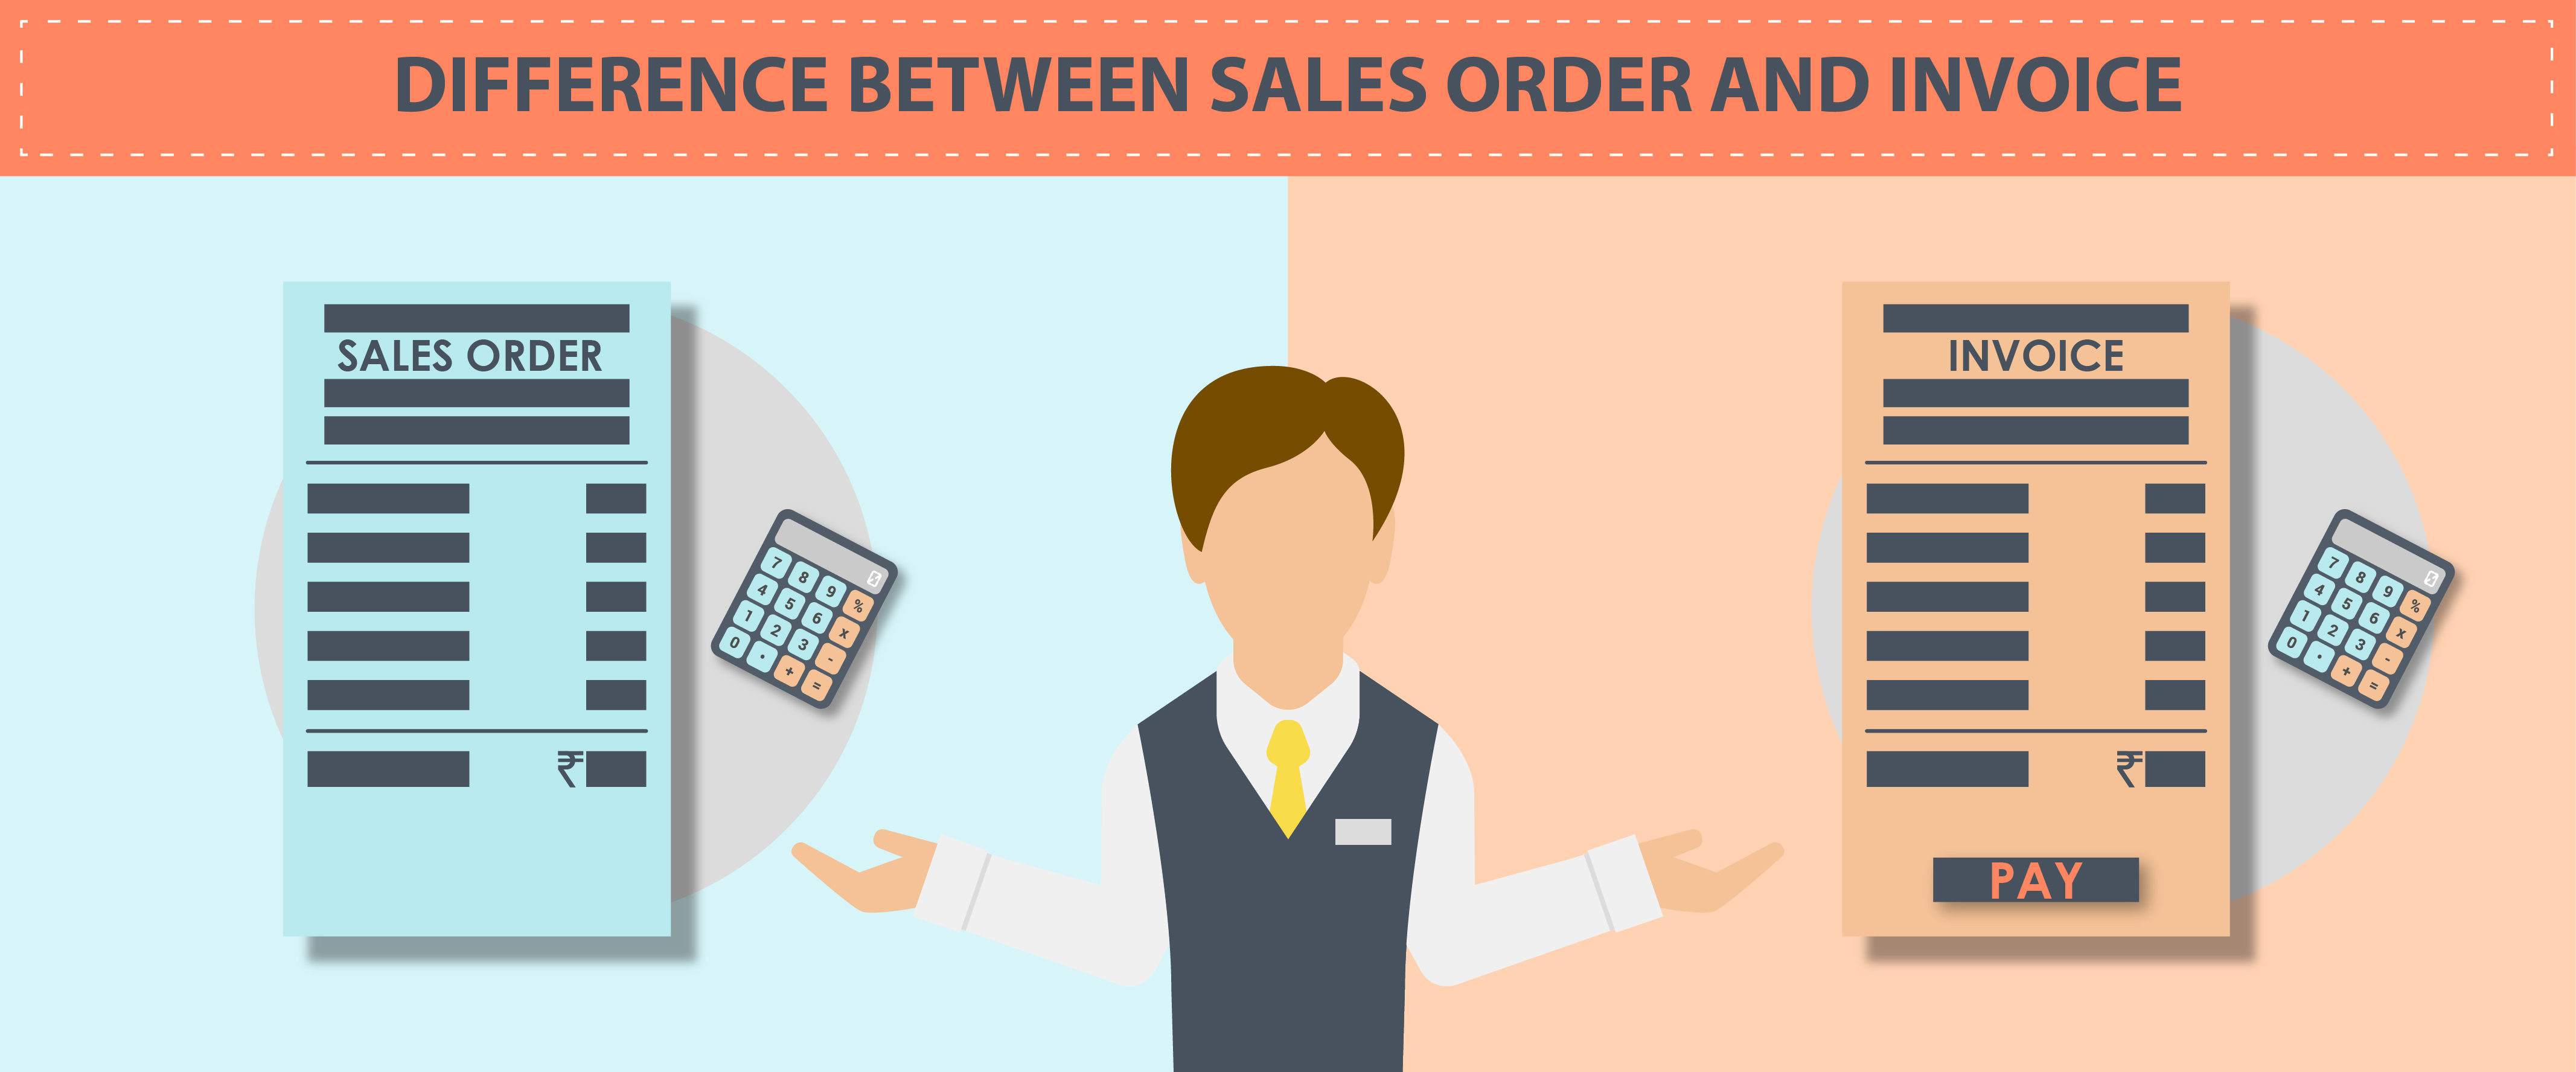 Difference Between Sales Order and Invoice